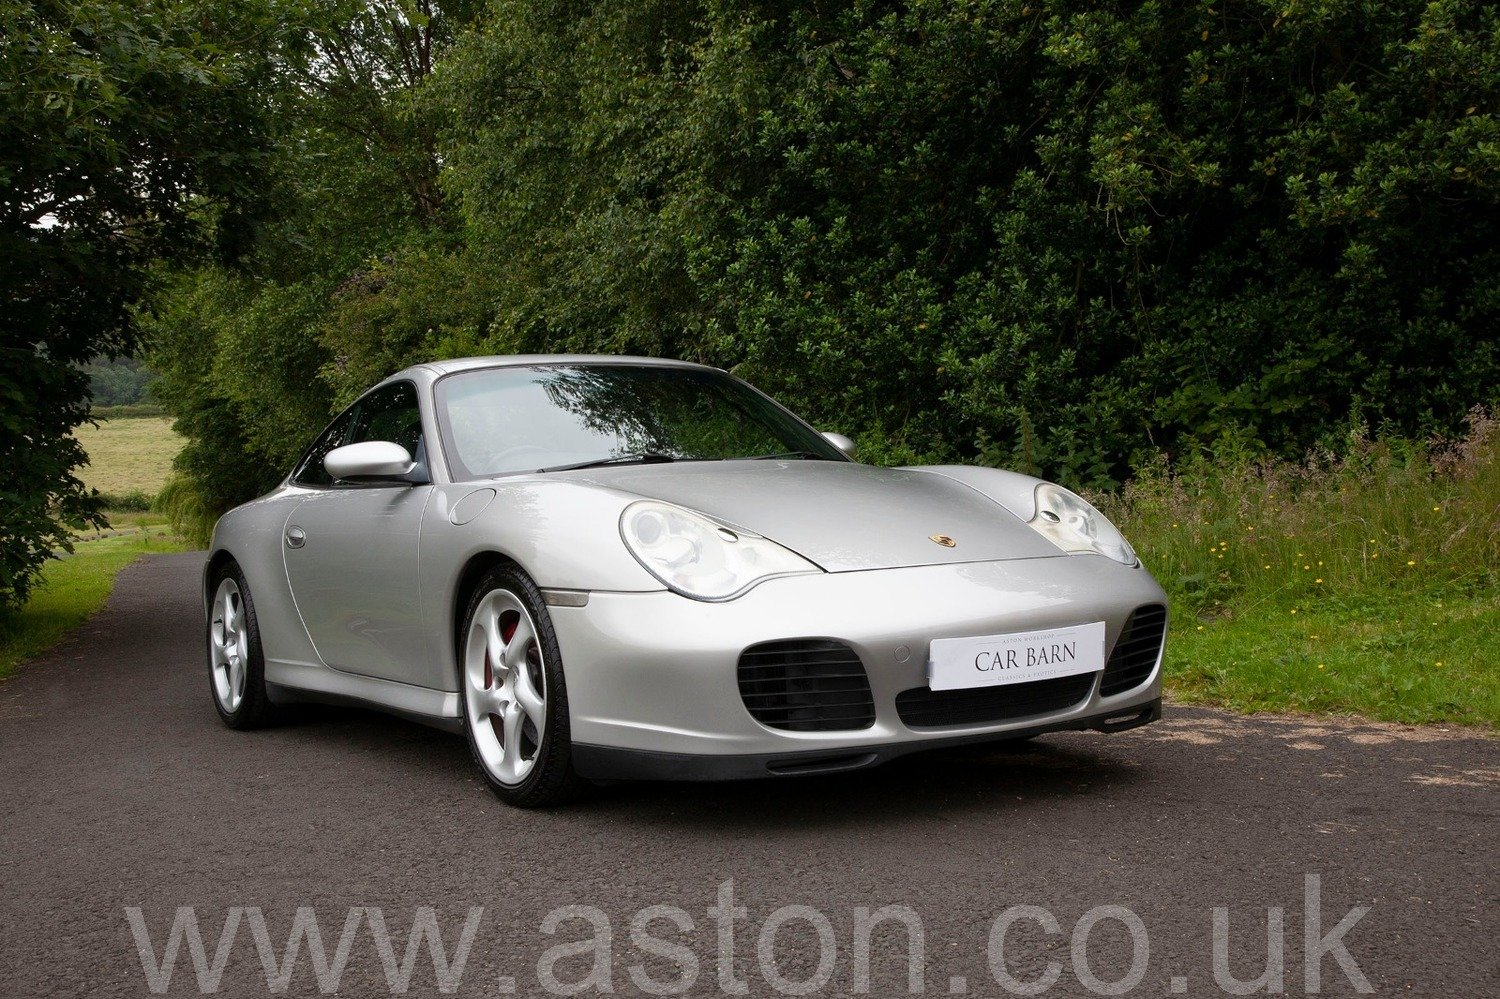 2003 Porsche 911 C4S Tiptronic For Sale (picture 5 of 6)